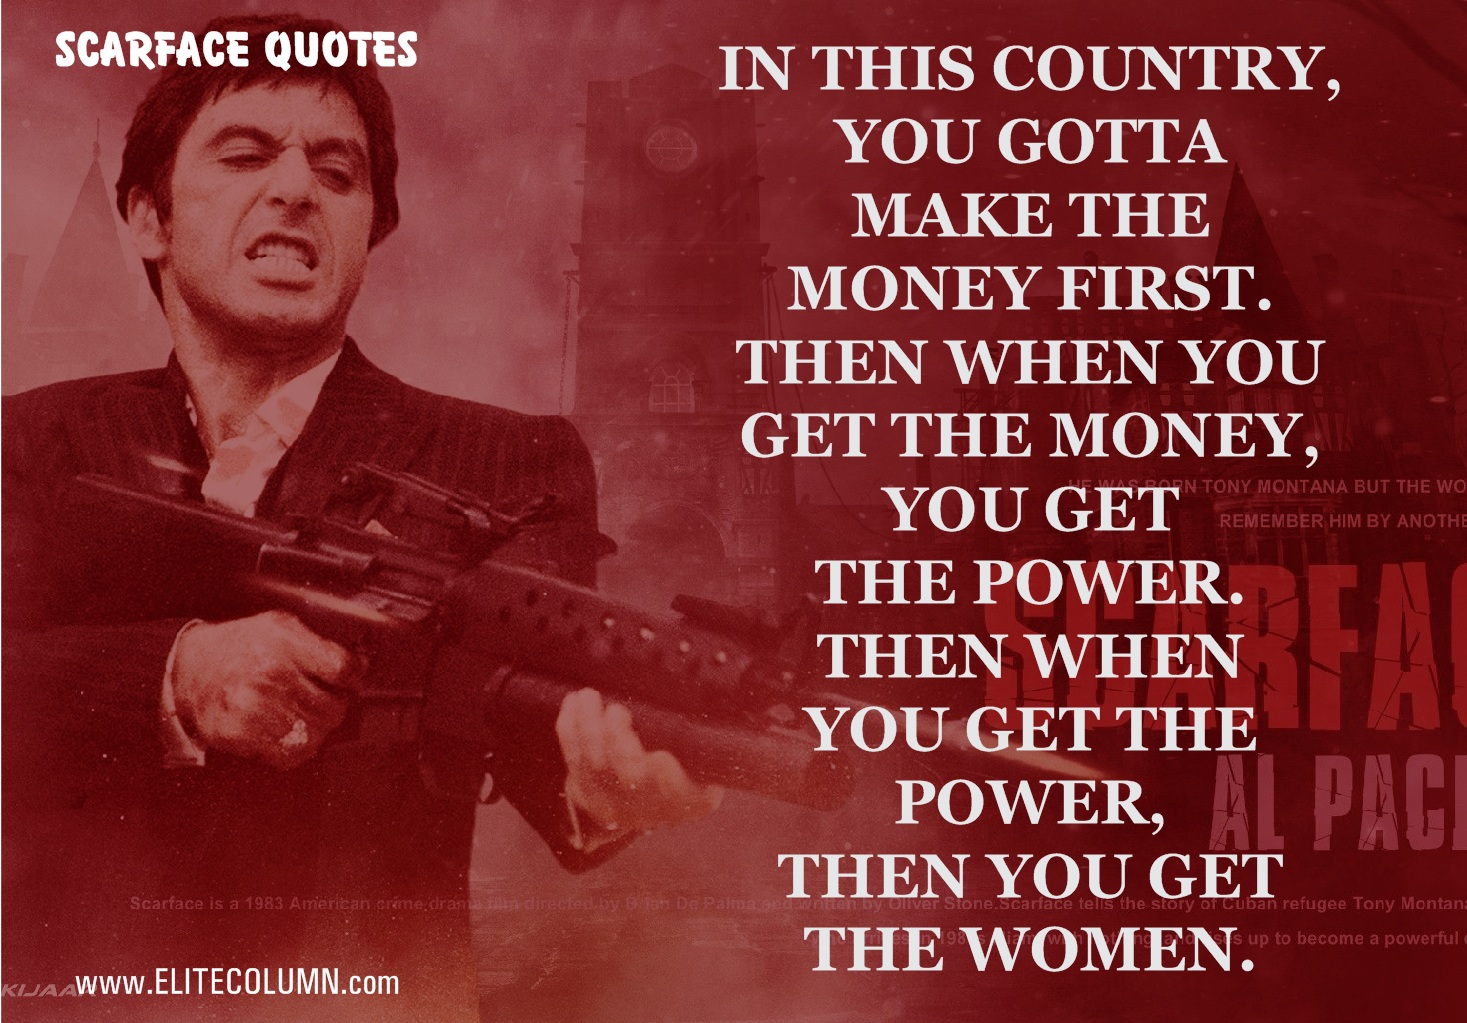 Scarface Quotes (14)